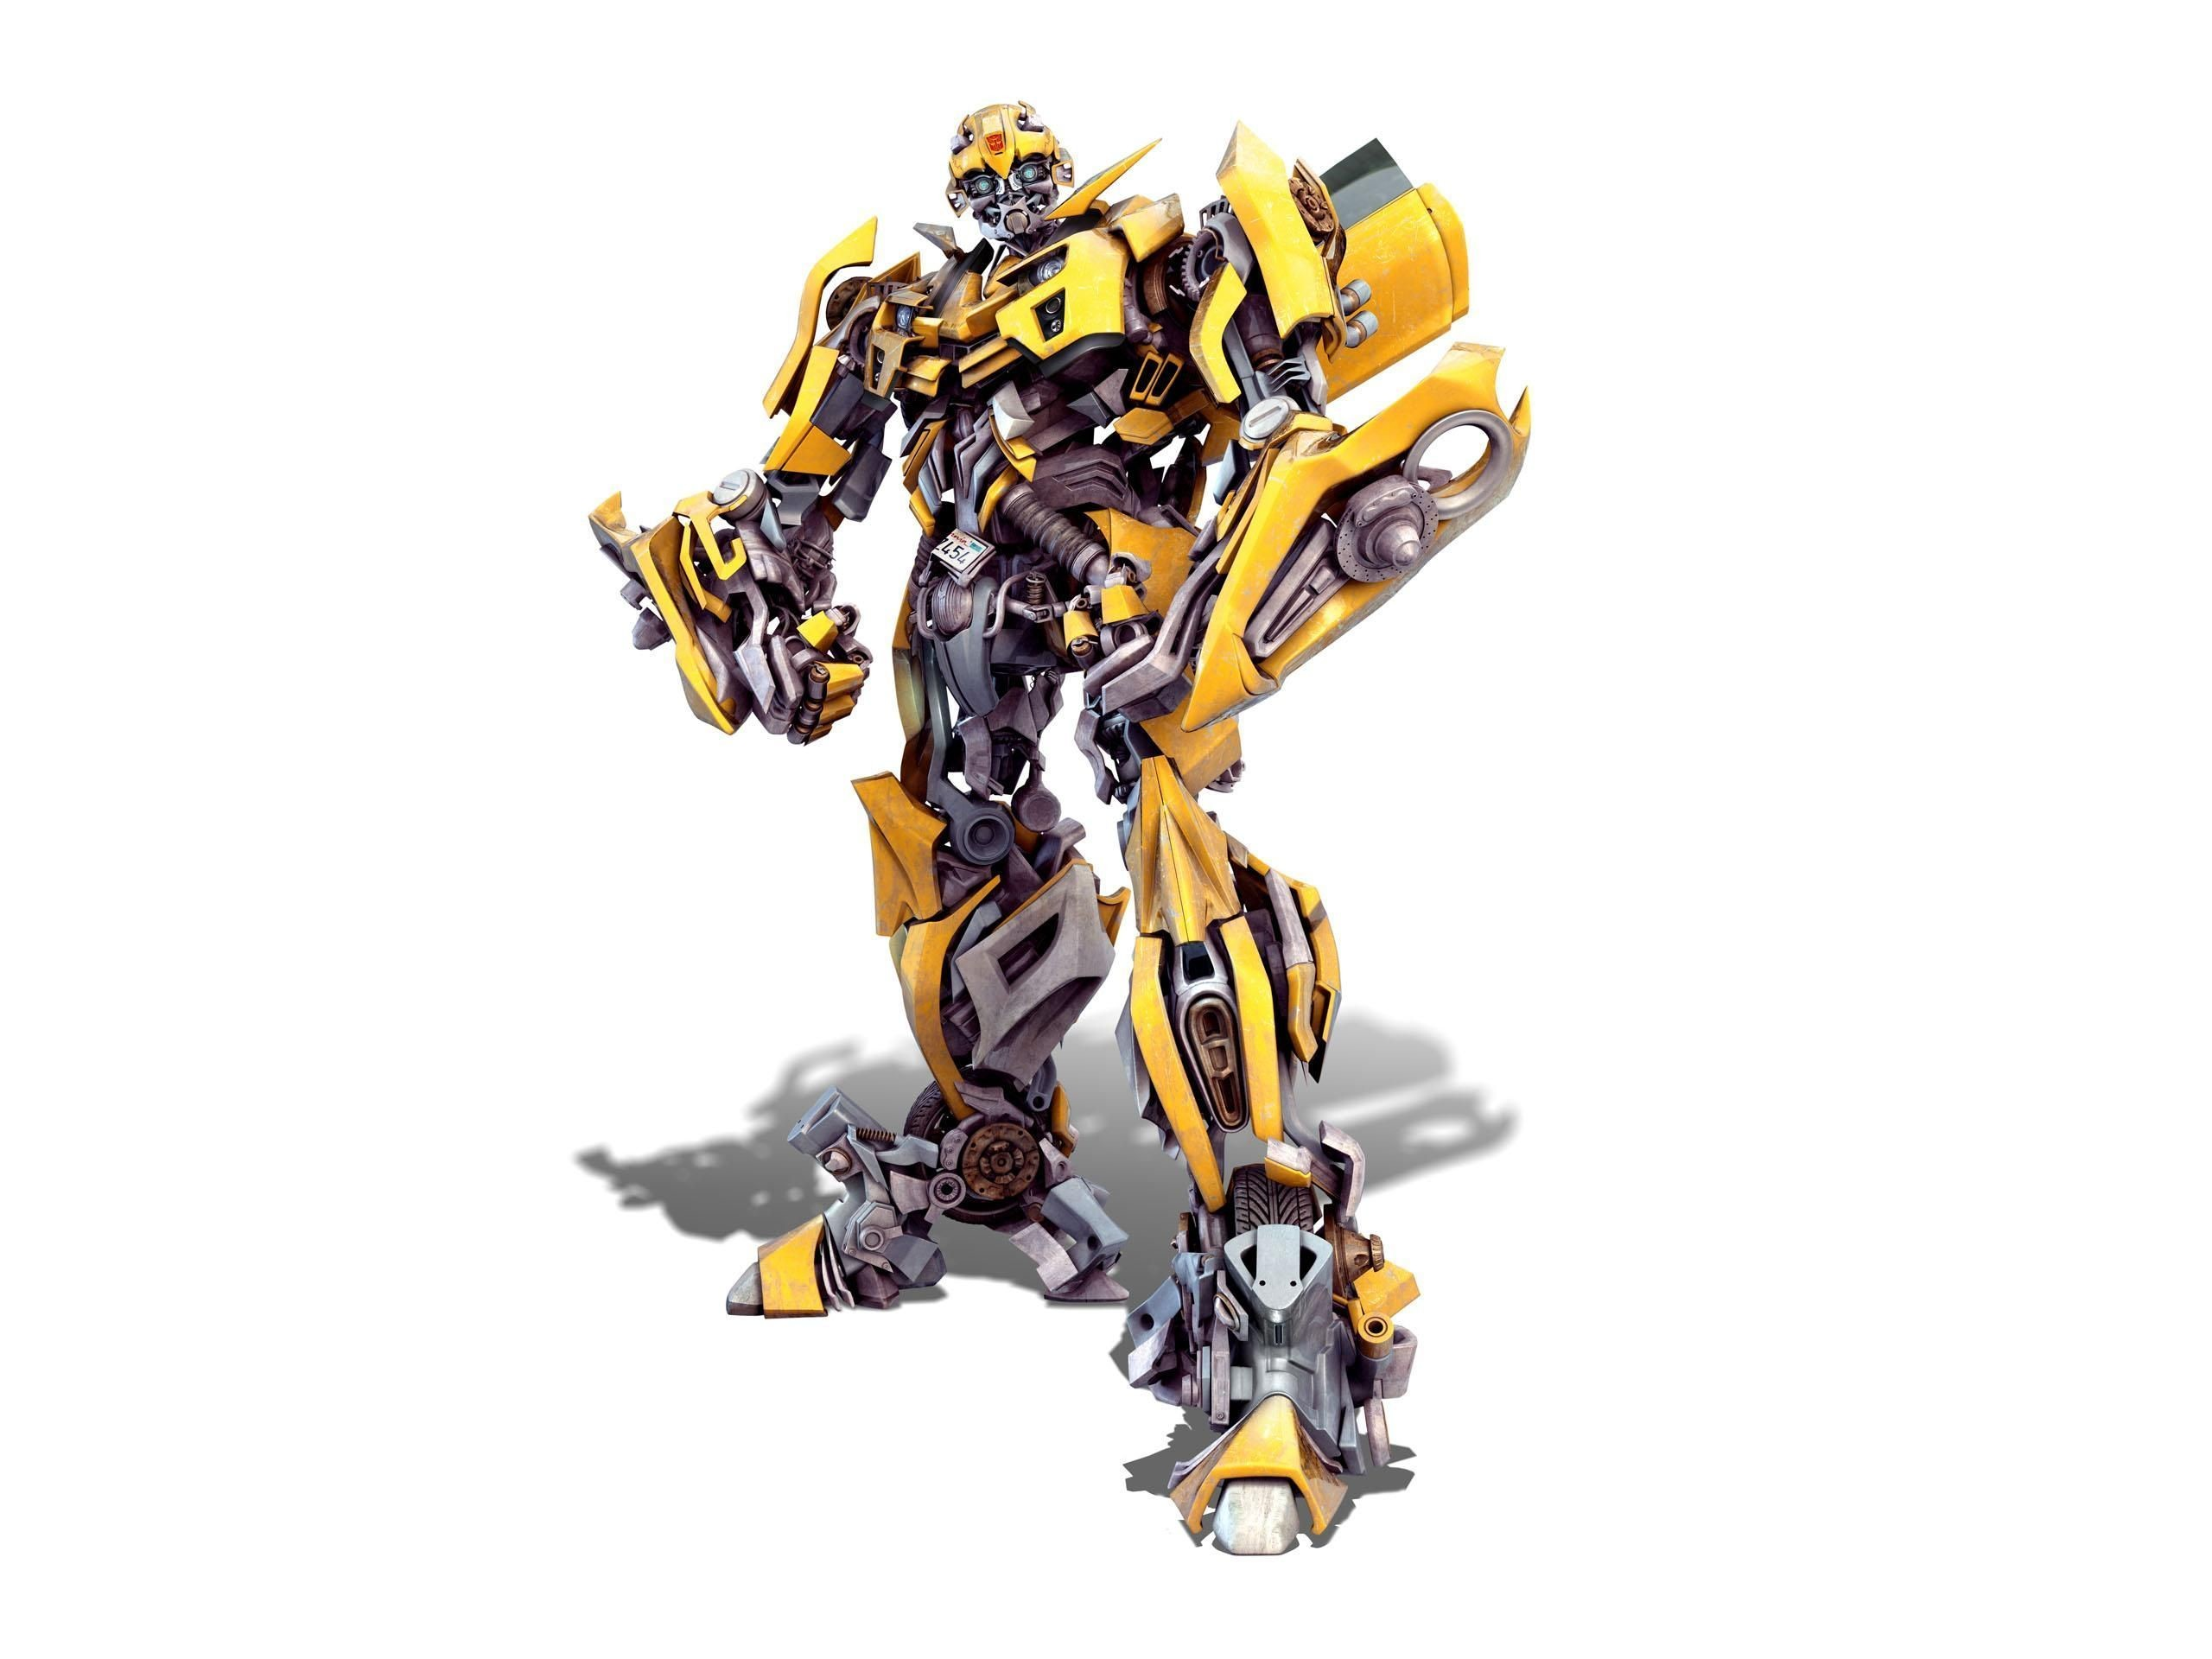 2560x1920 Download Cool Bumblebee Transformer Wallpaper